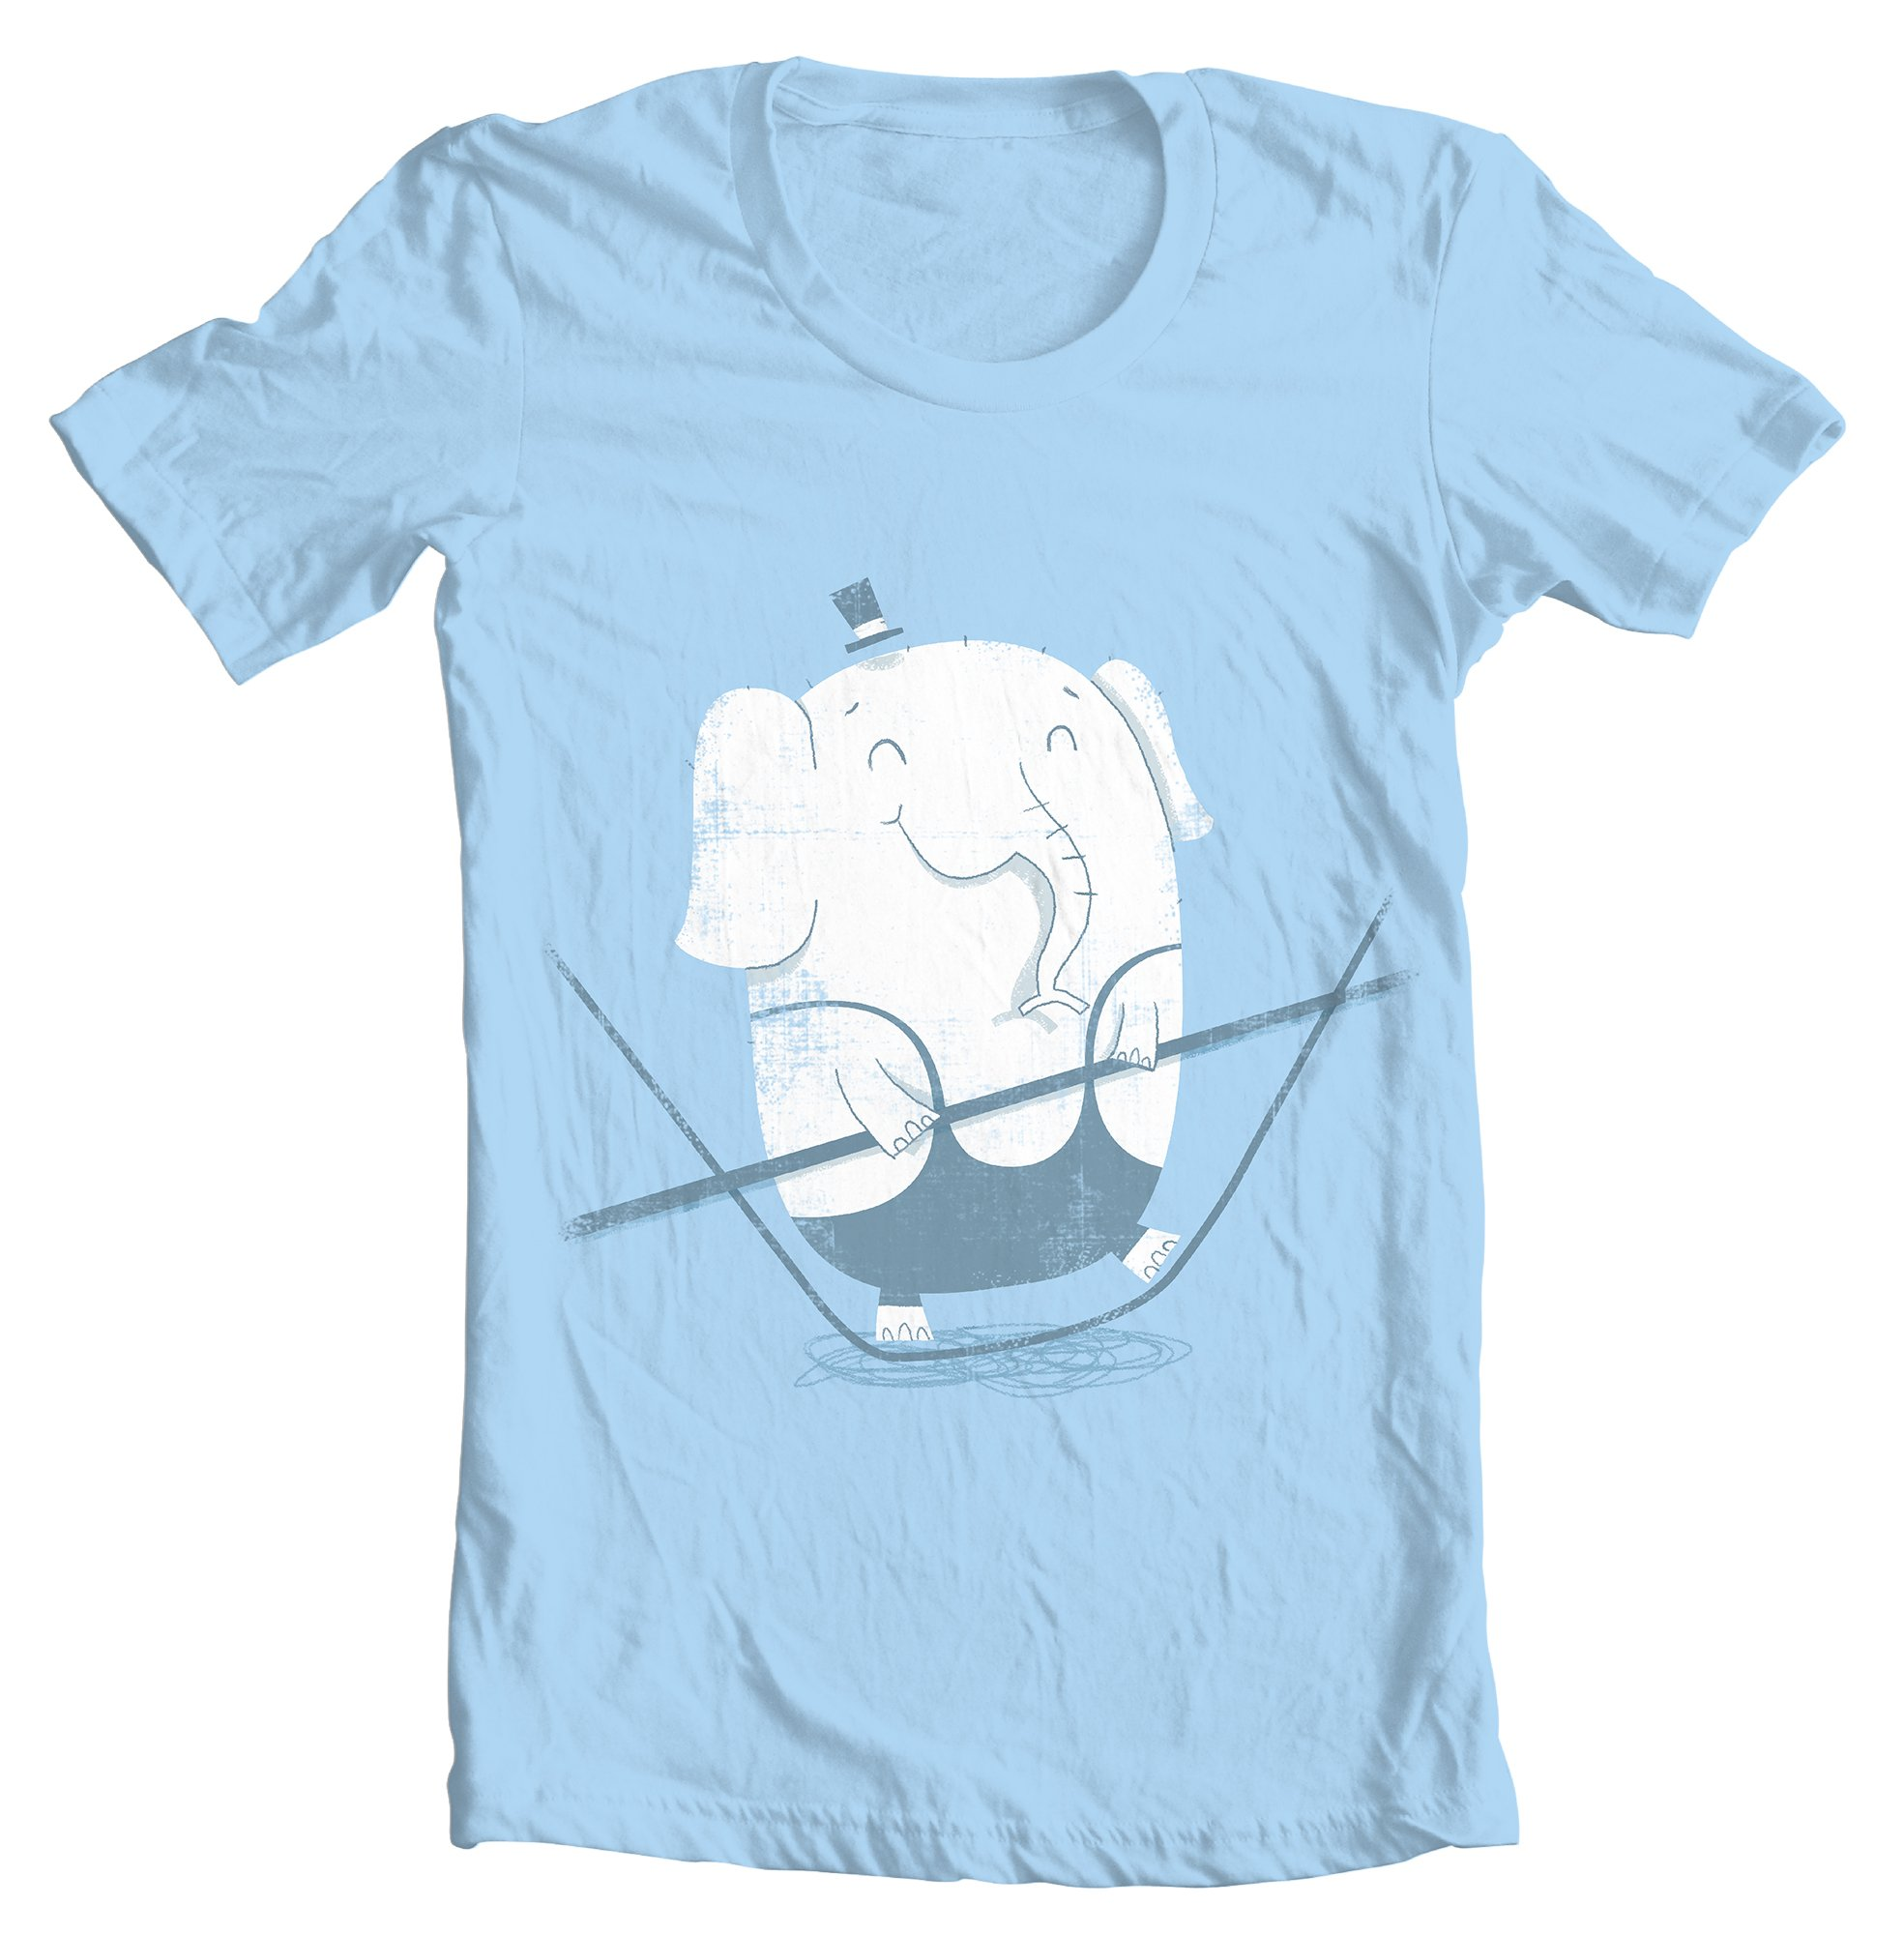 Tightrope Elephant T-shirt Design